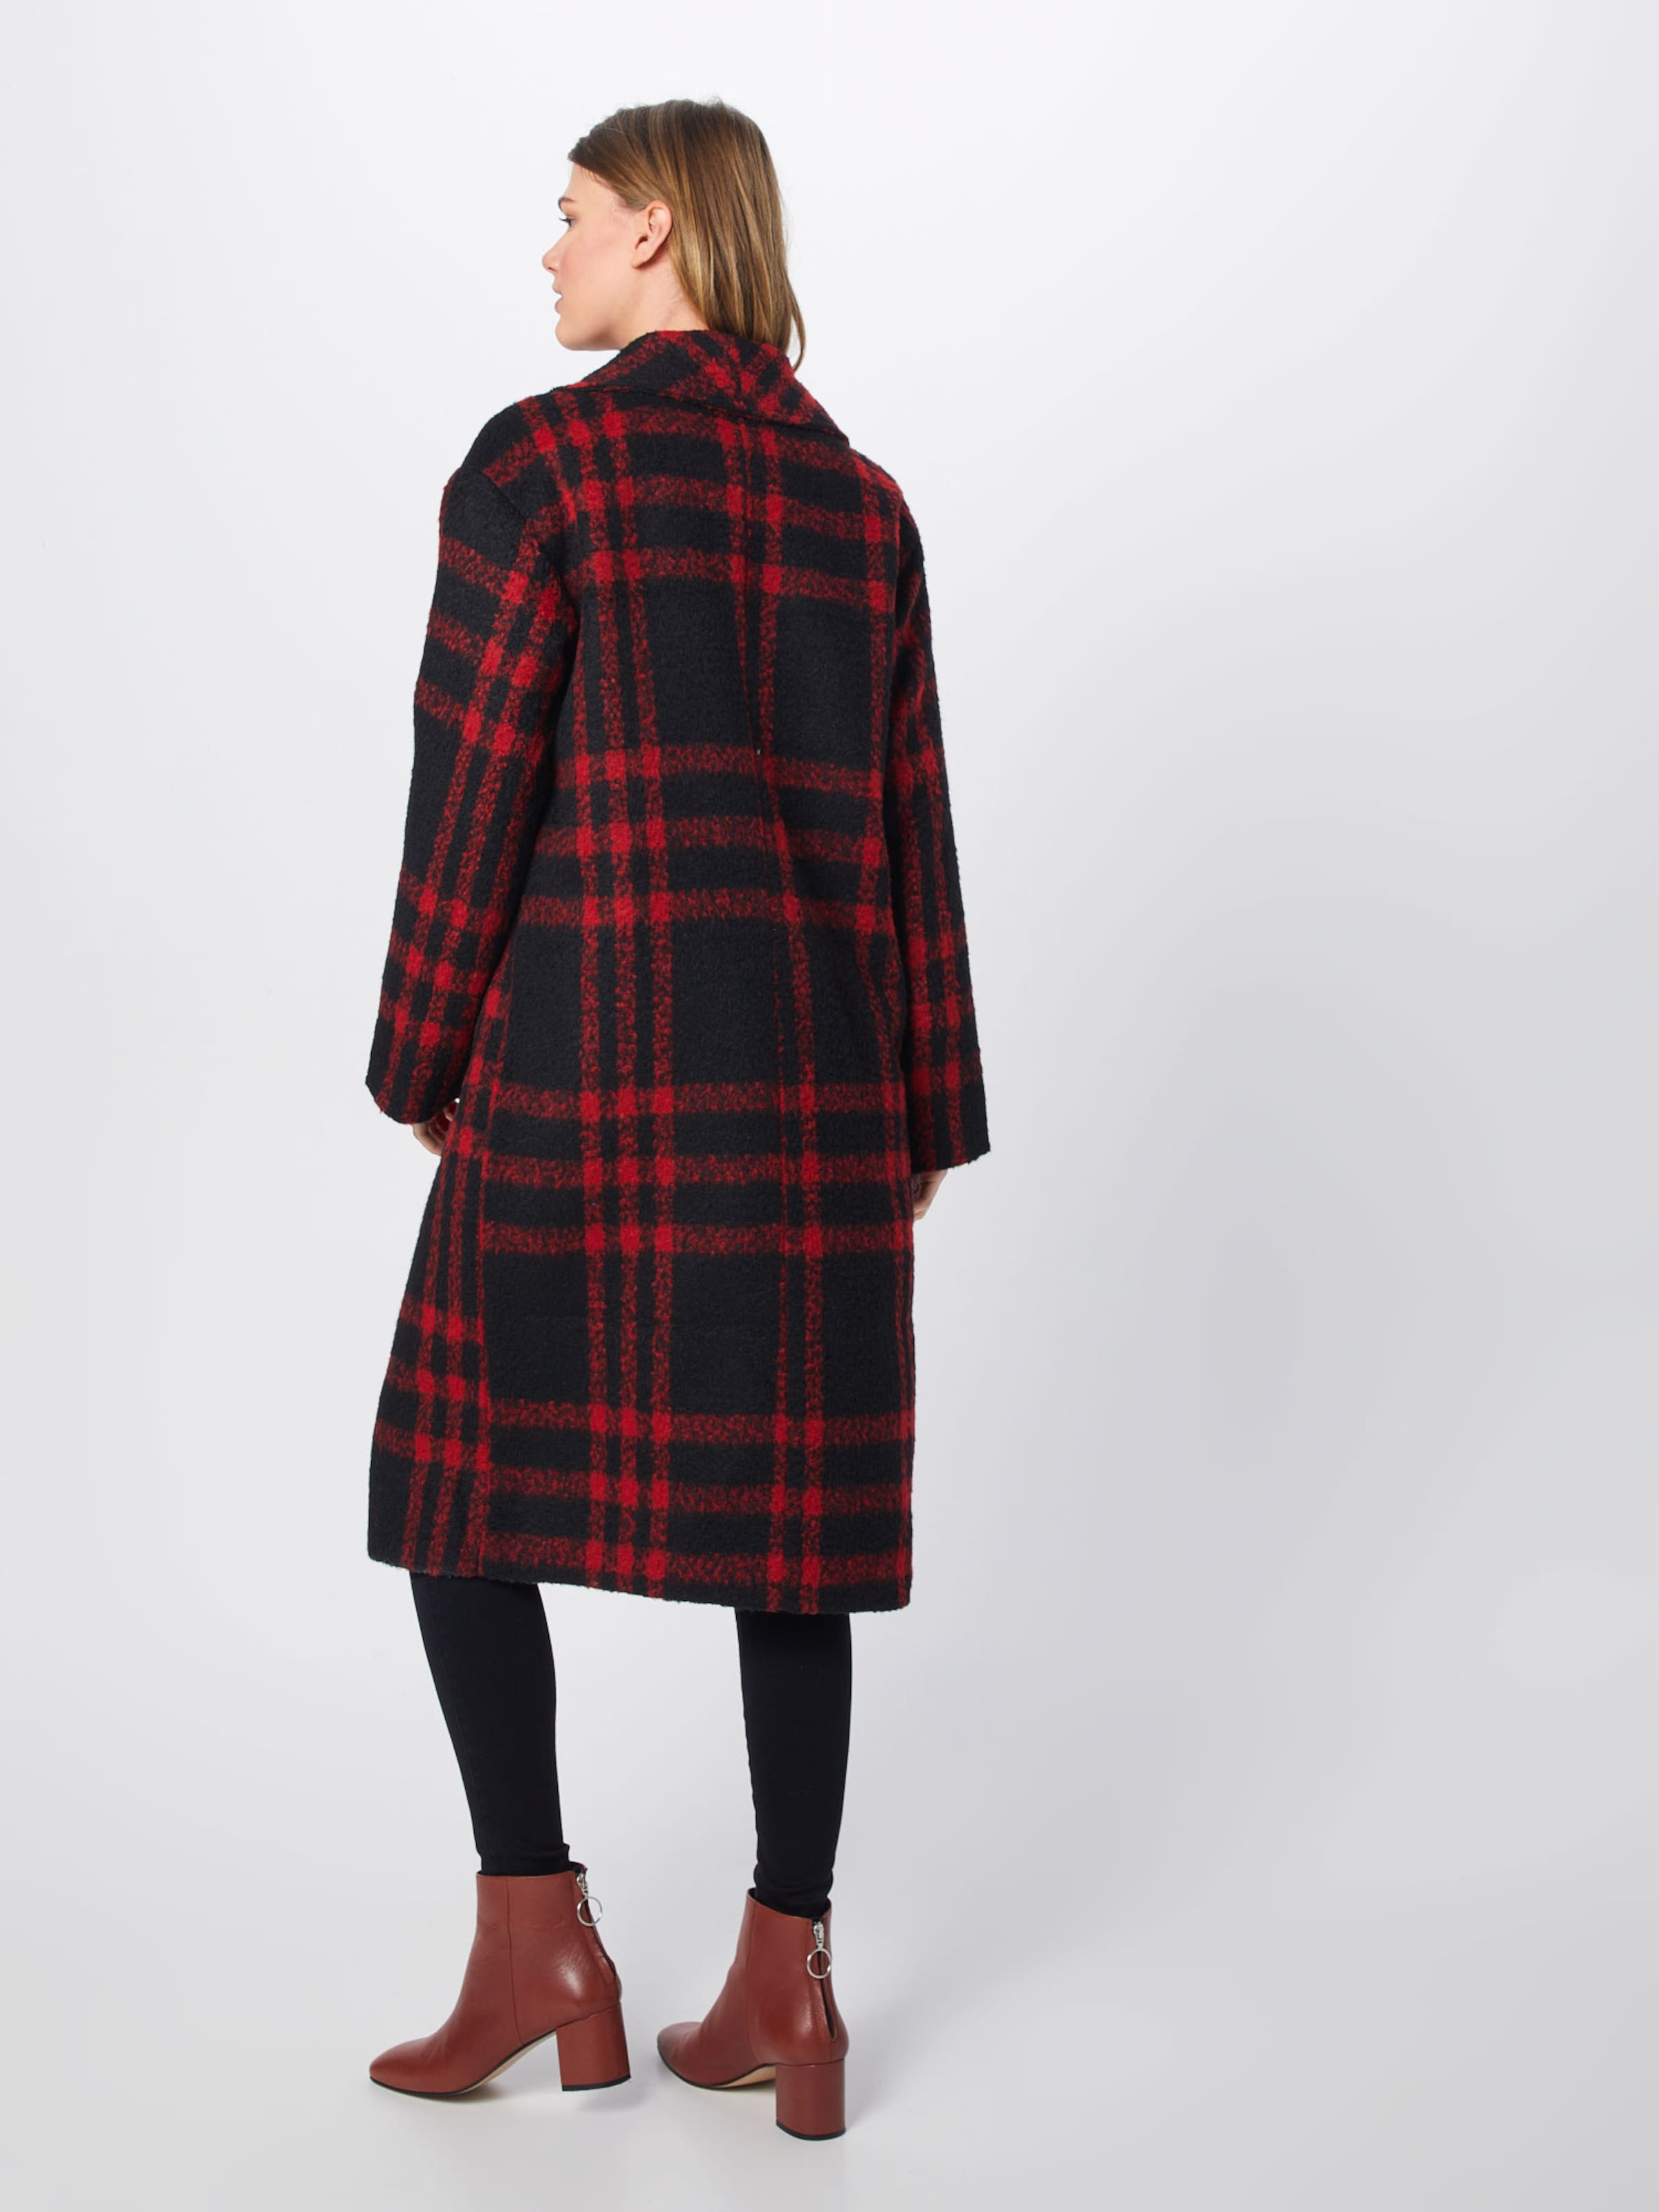 Collar RotSchwarz 'check Missguided In Shawl Mantel Coat' N8Omv0nw